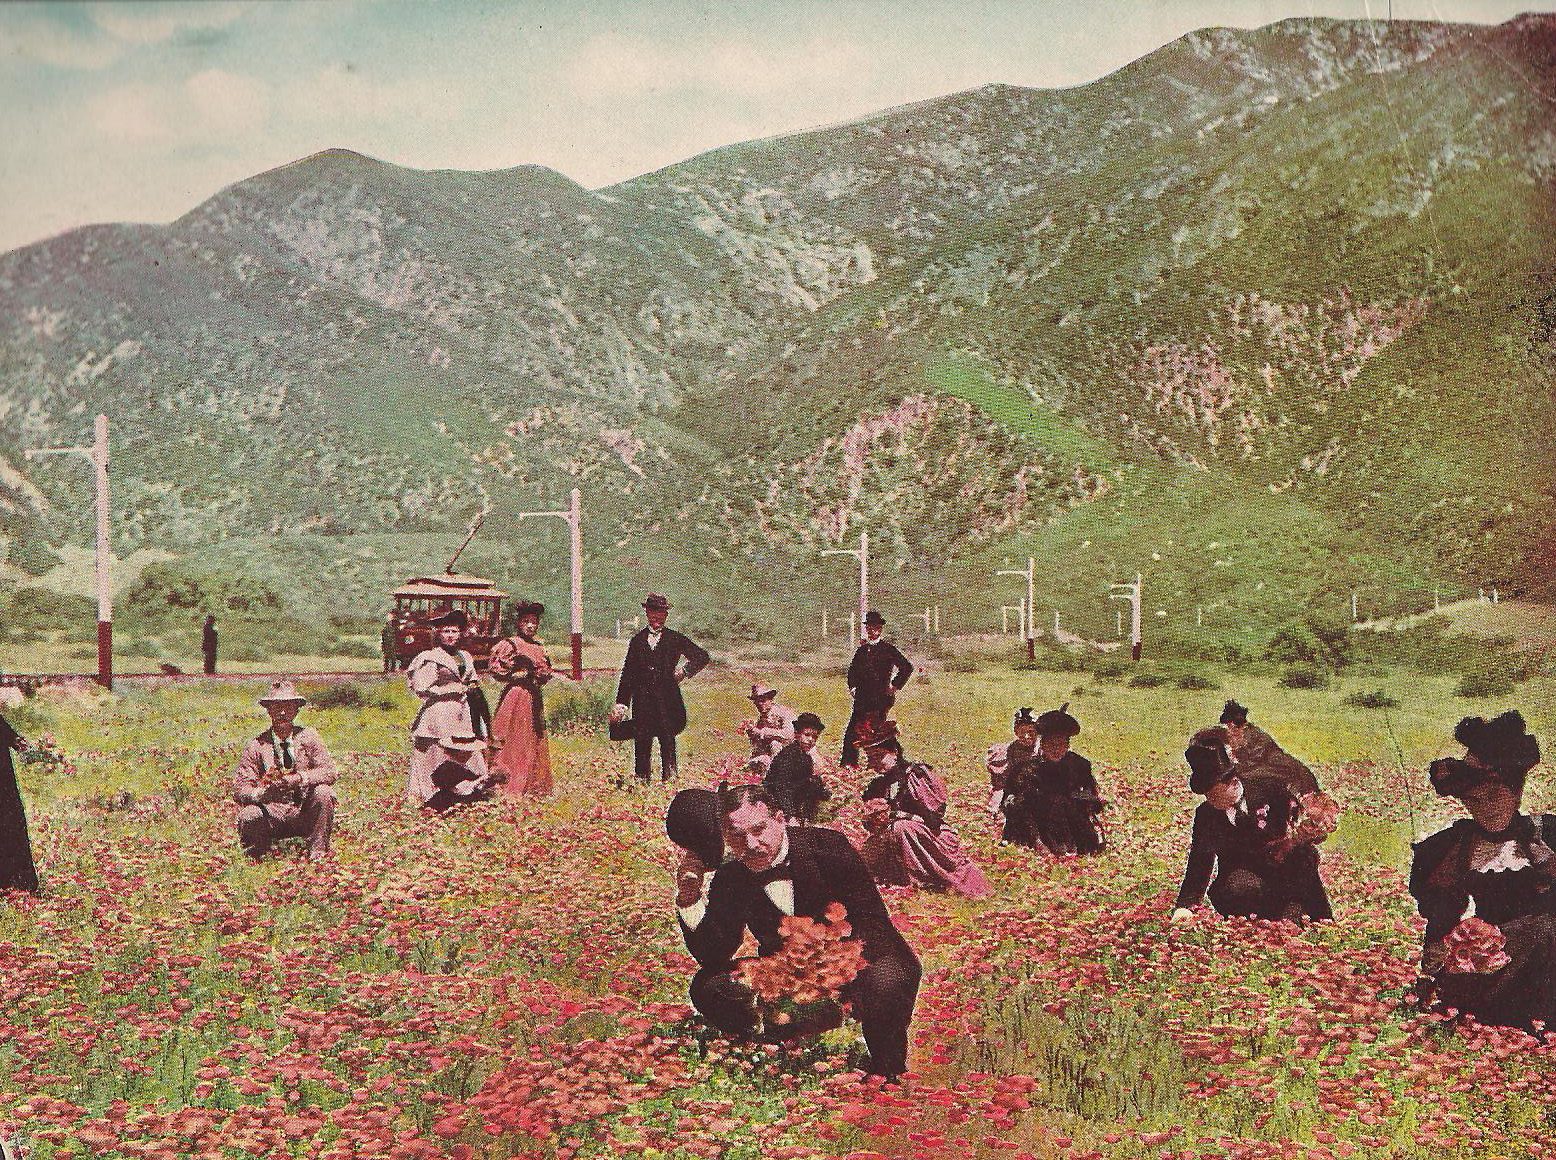 Tourists pick wildflowers in an Altadena poppy field, 1907. Courtesy of the David Klappholz Collection.